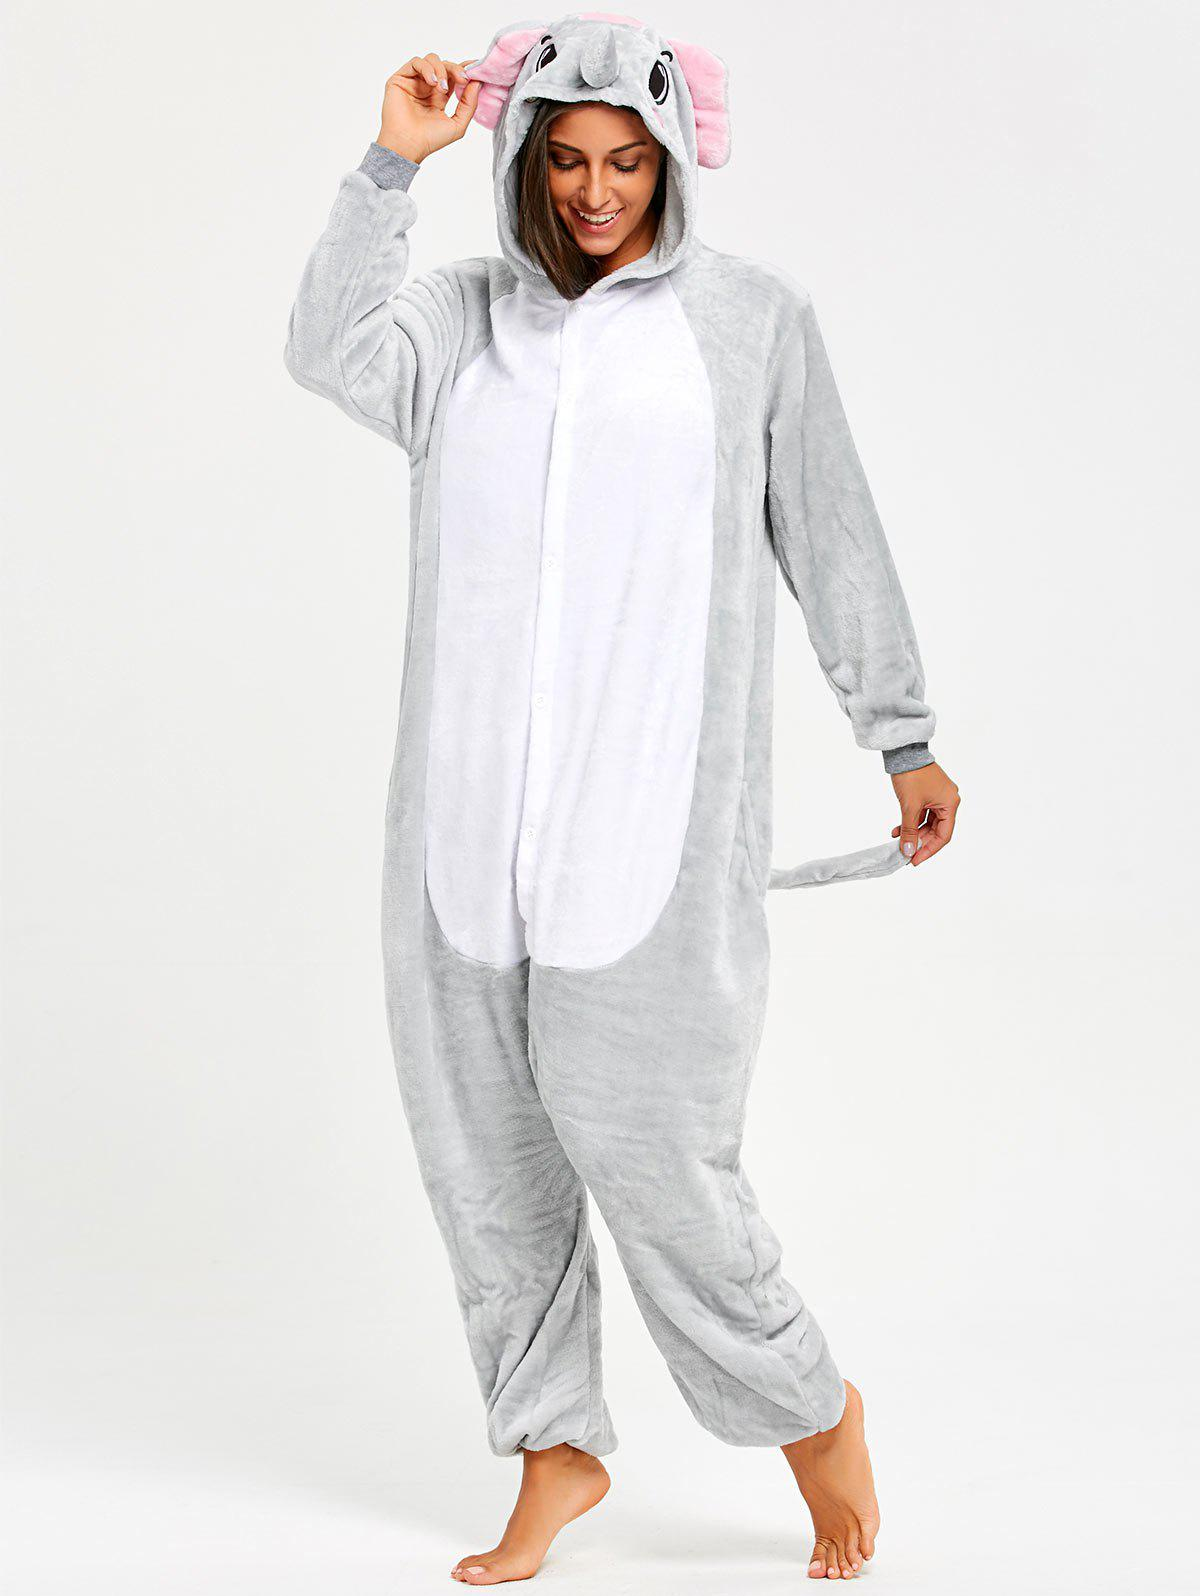 Cartoon Elephant Animal Onesie Pjs CostumeWOMEN<br><br>Size: S; Color: GRAY; Material: Polyester; Fabric Type: Fleece; Pattern Type: Animal; Weight: 0.5000kg; Package Contents: 1 x Onesie  Pajama;